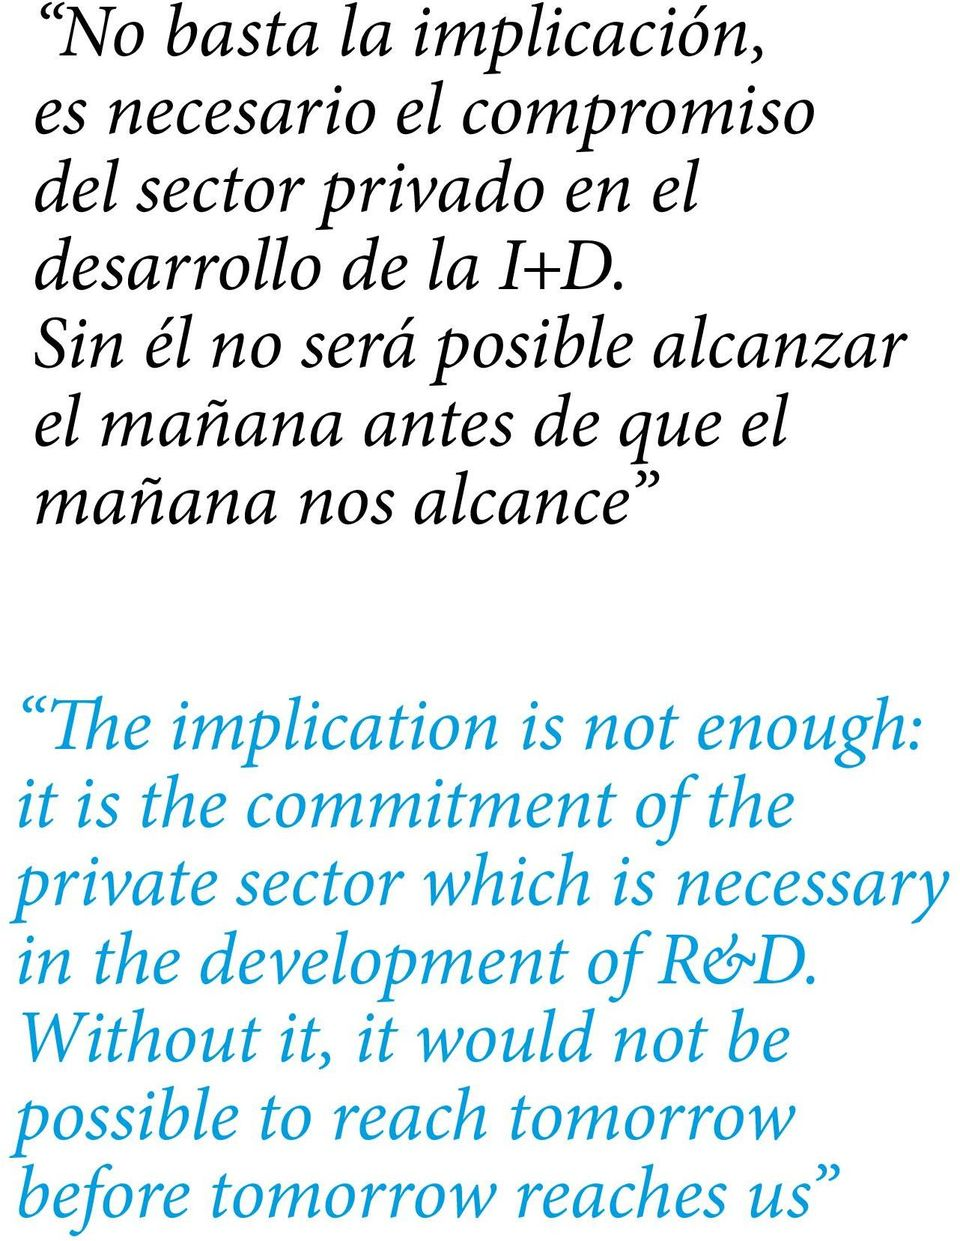 implication is not enough: it is the commitment of the private sector which is necessary in